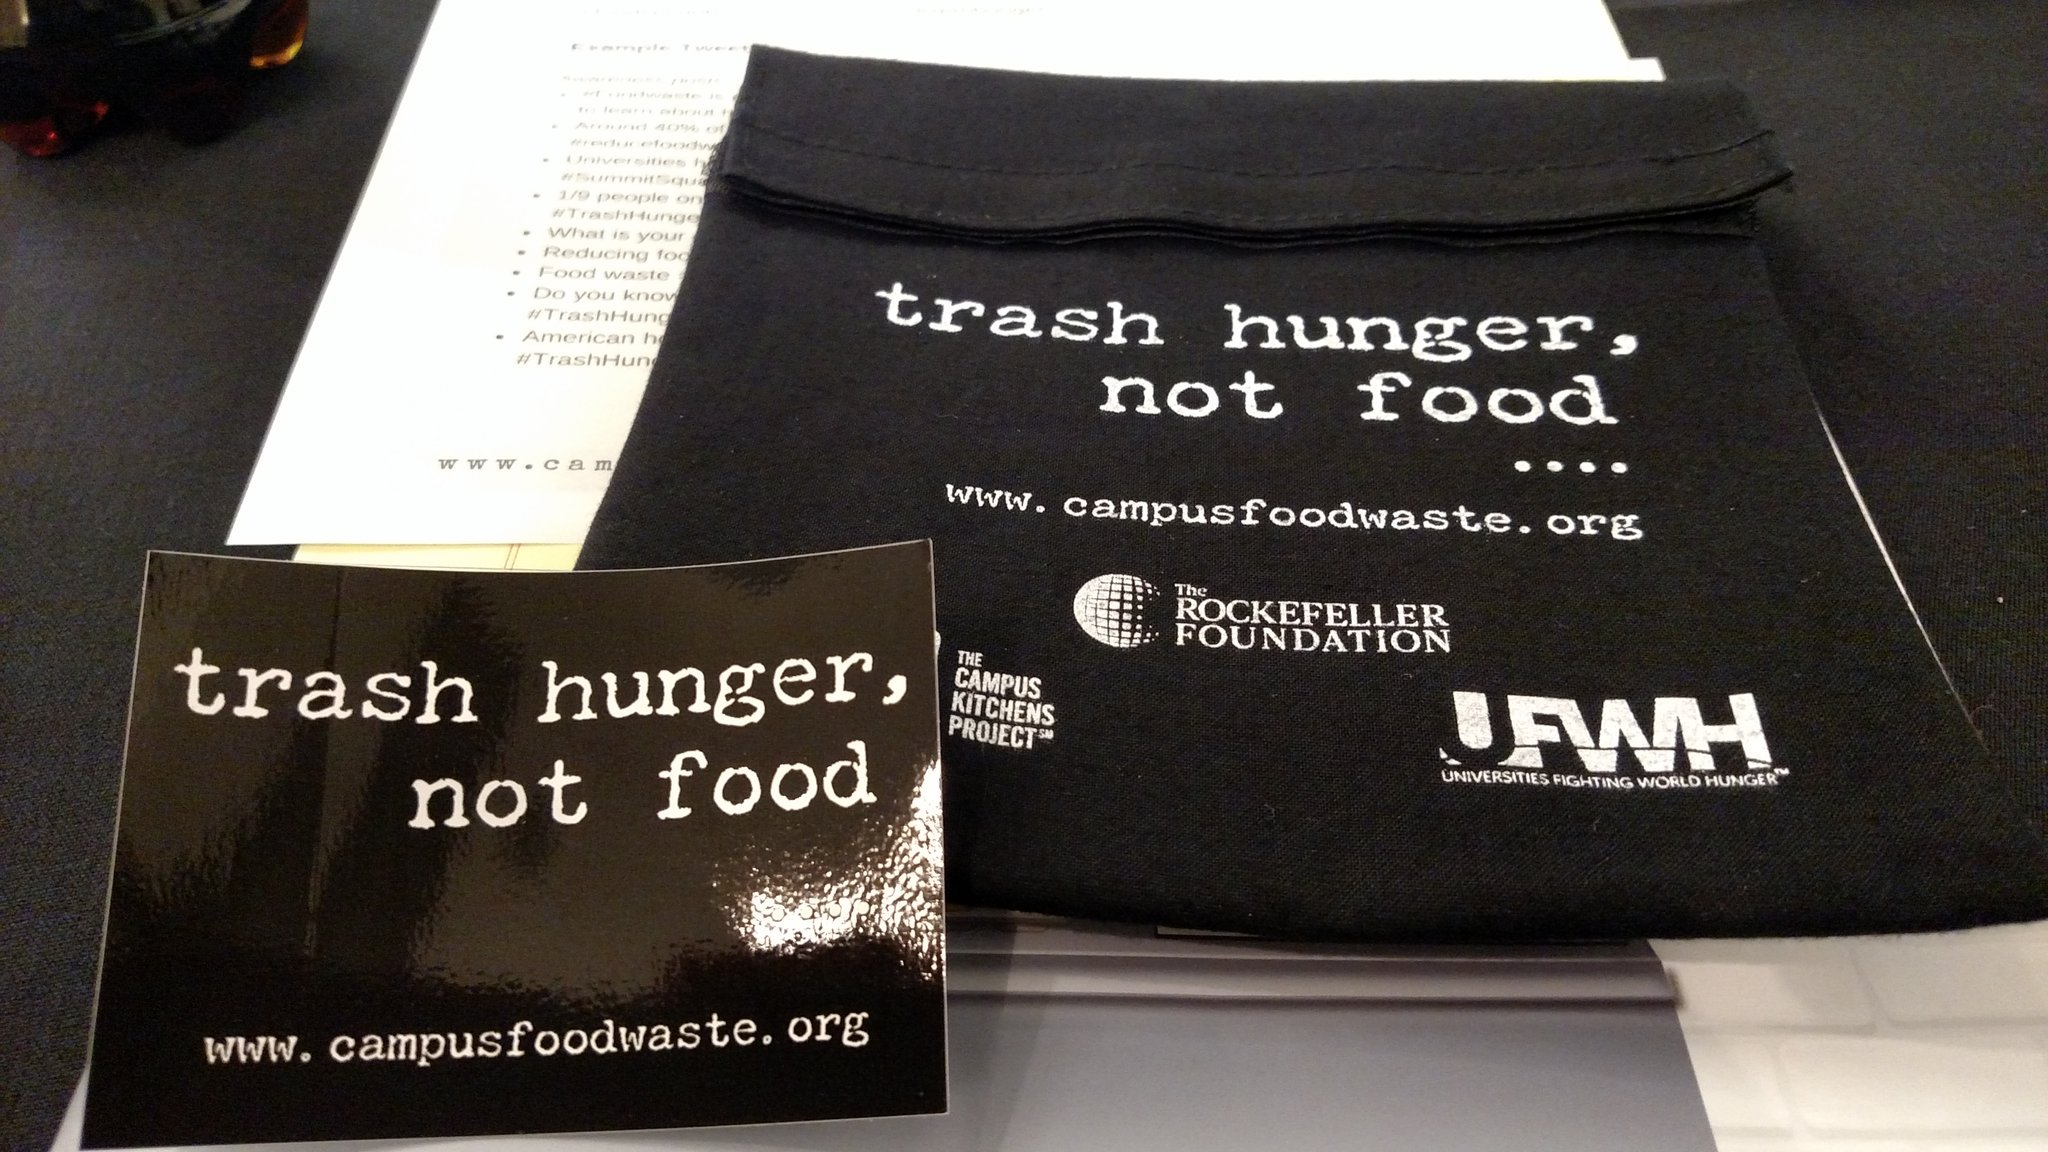 RT @Just_LynetteJ: The Trash Hunger, Not Food campaign to end campus food waste debuts at #summitsquared! https://t.co/3eRJ2CD10V